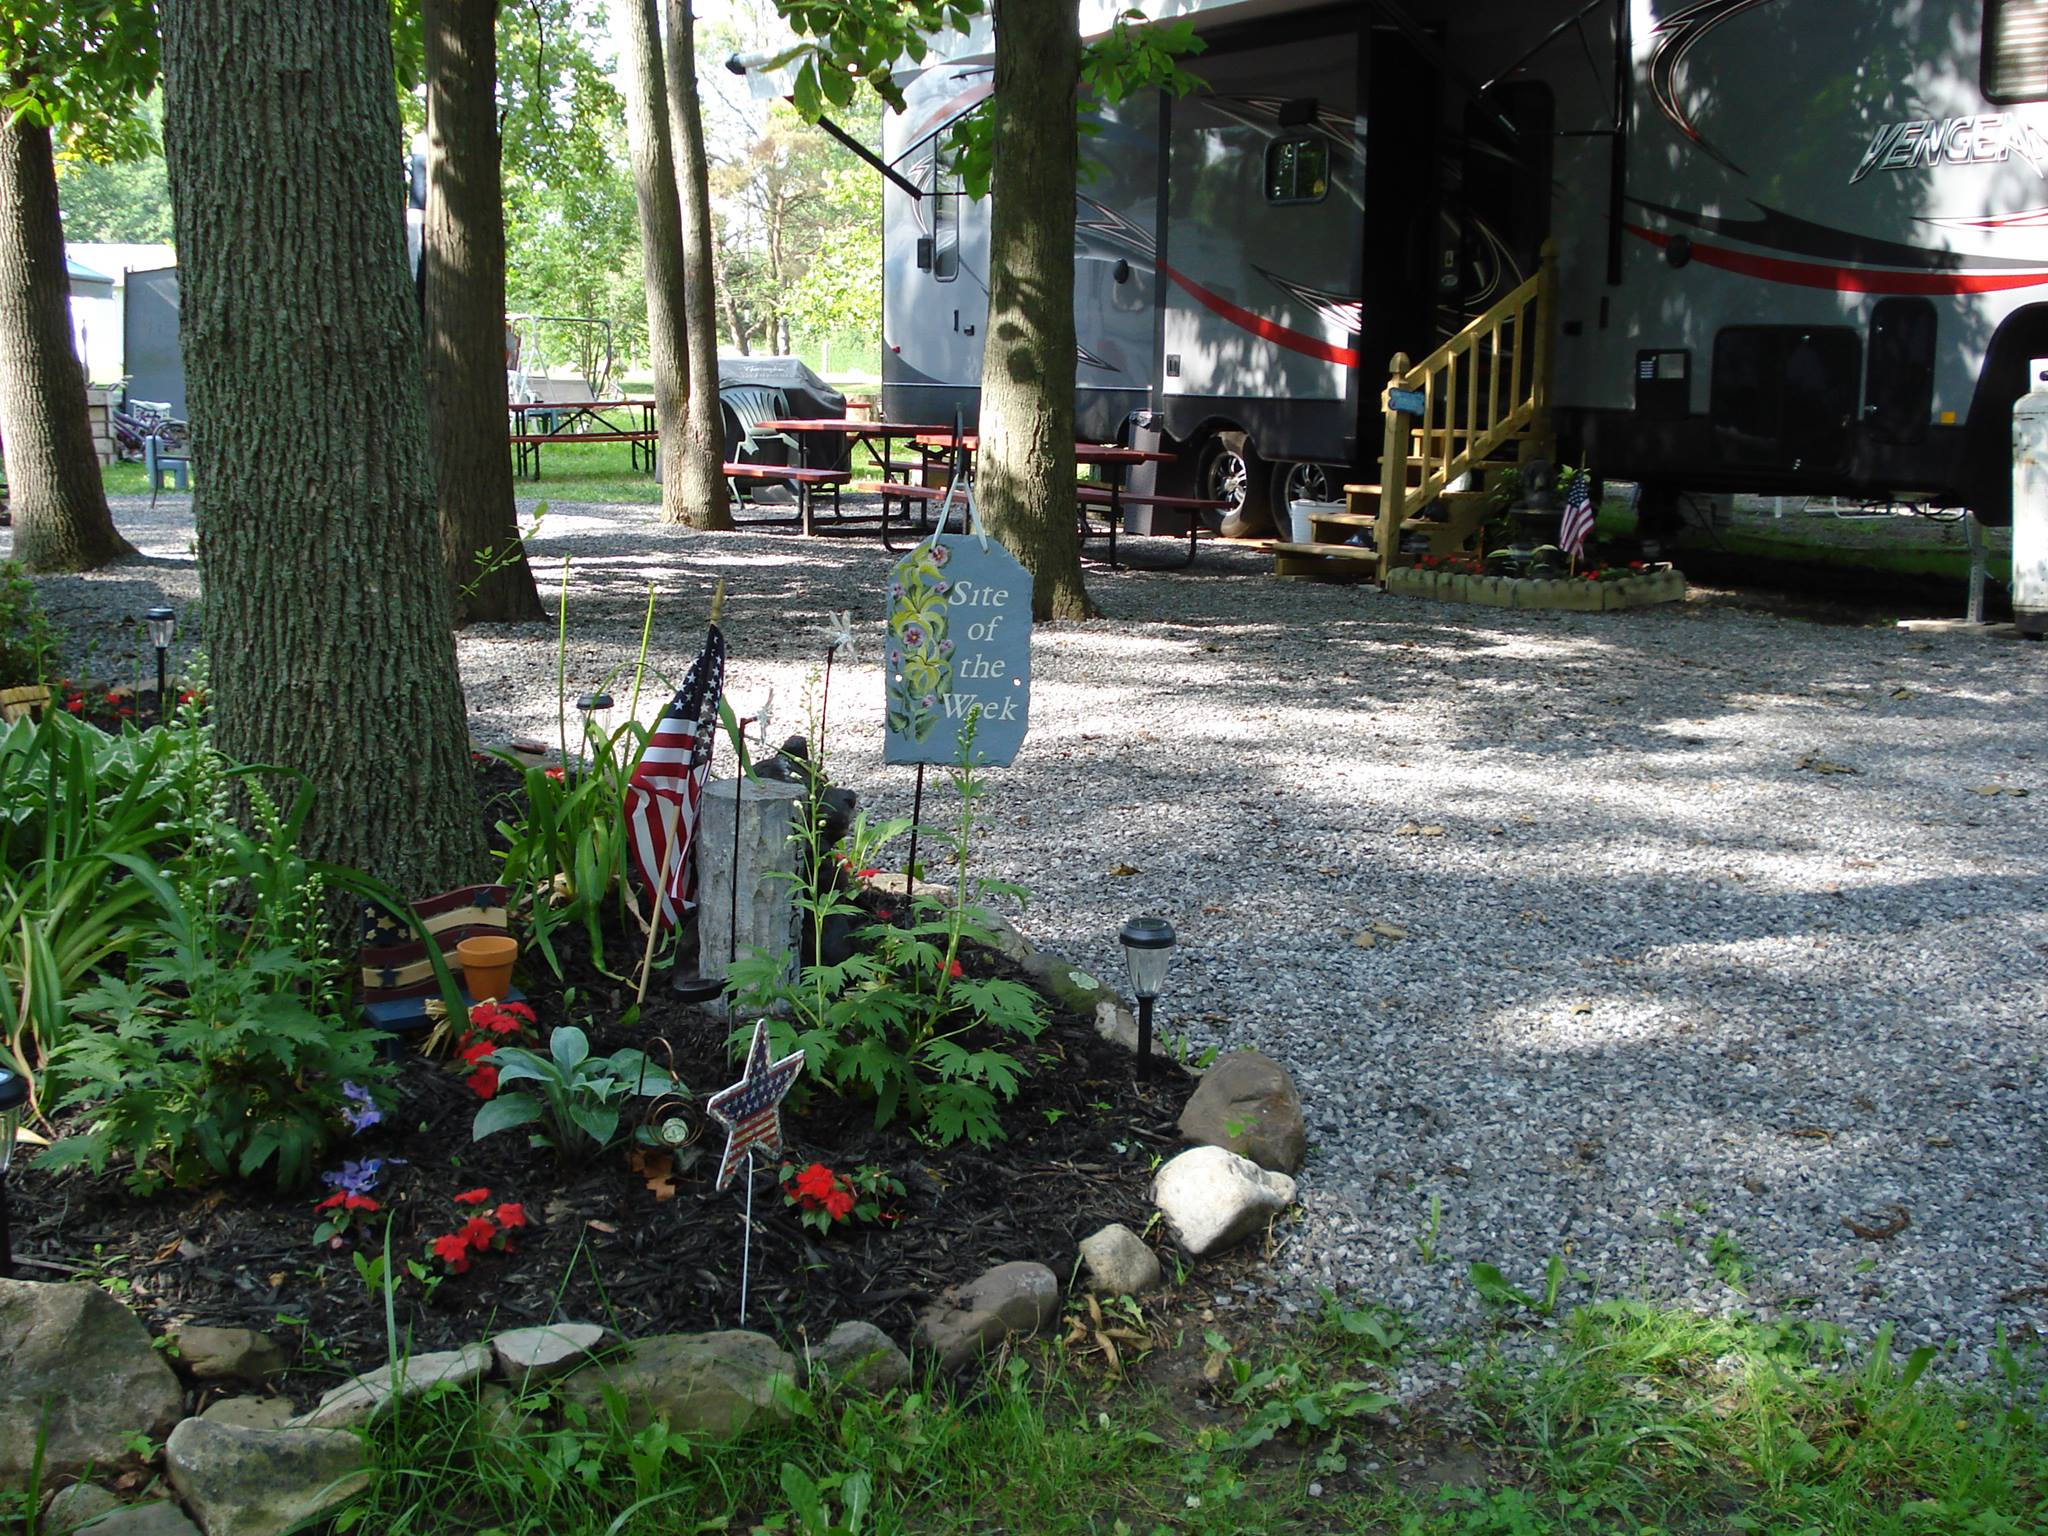 Site of the week at Niagara Woodland Campground